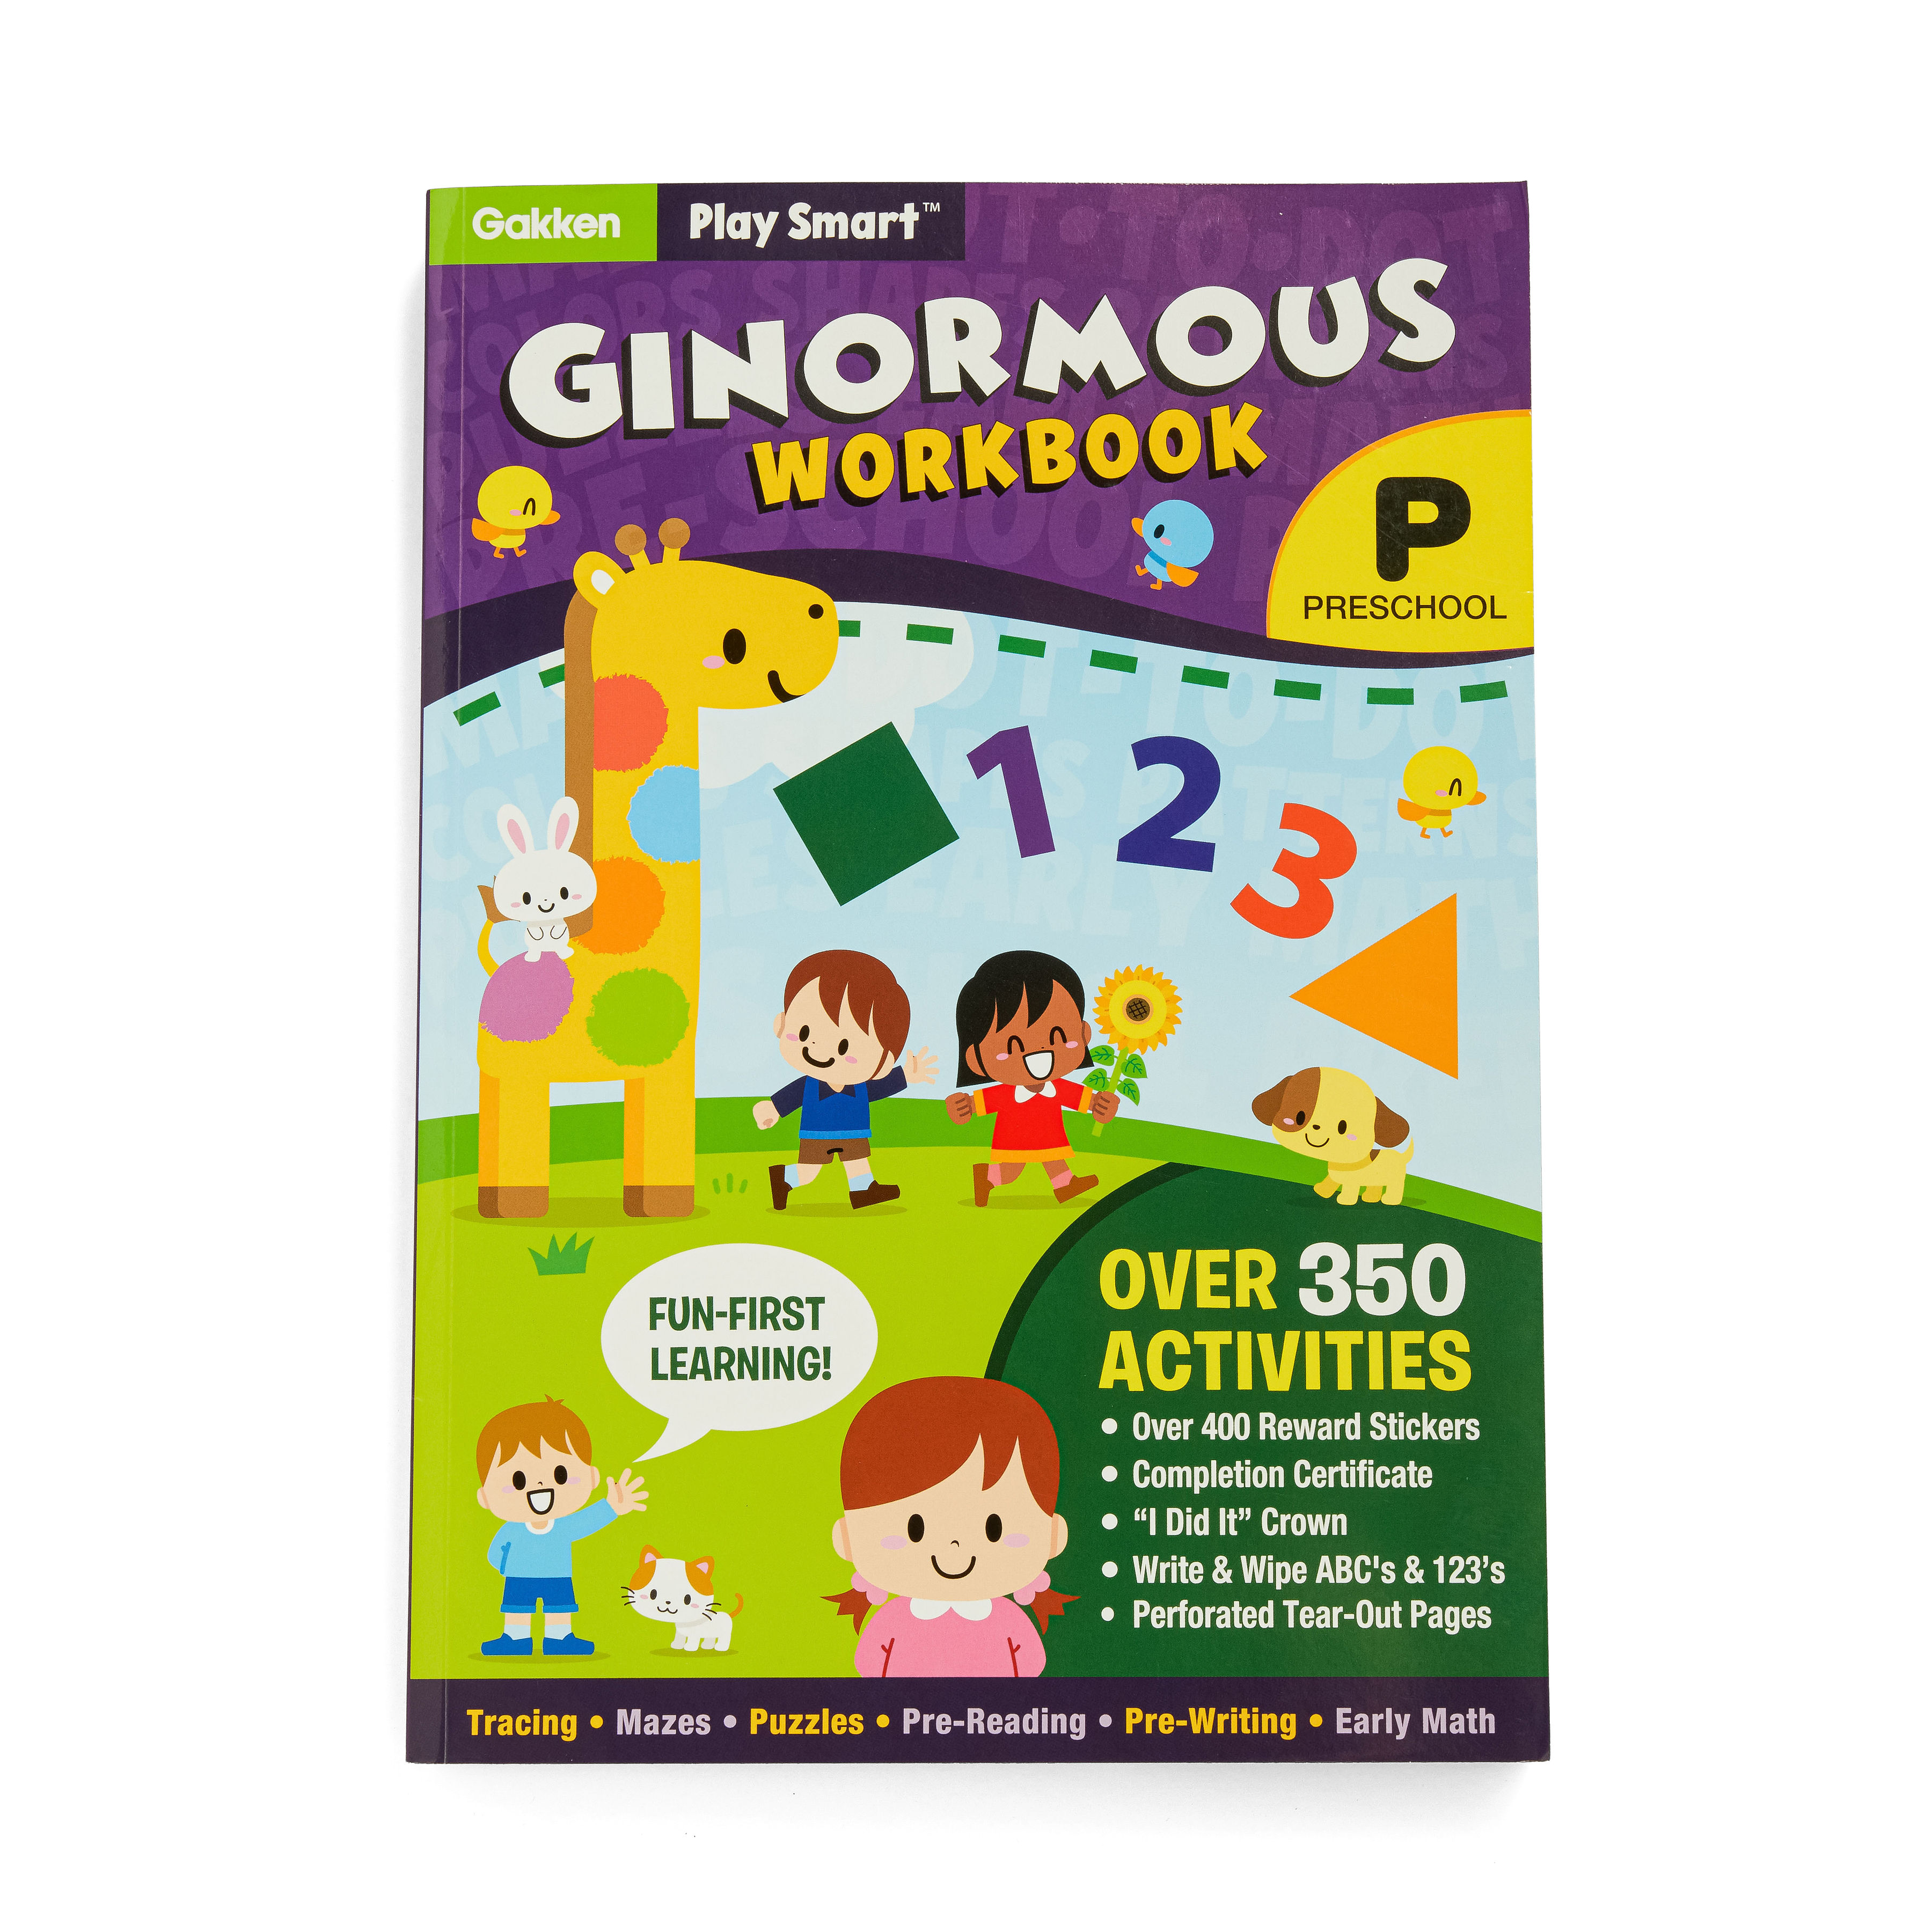 Play Smart Preschool Workbook Series